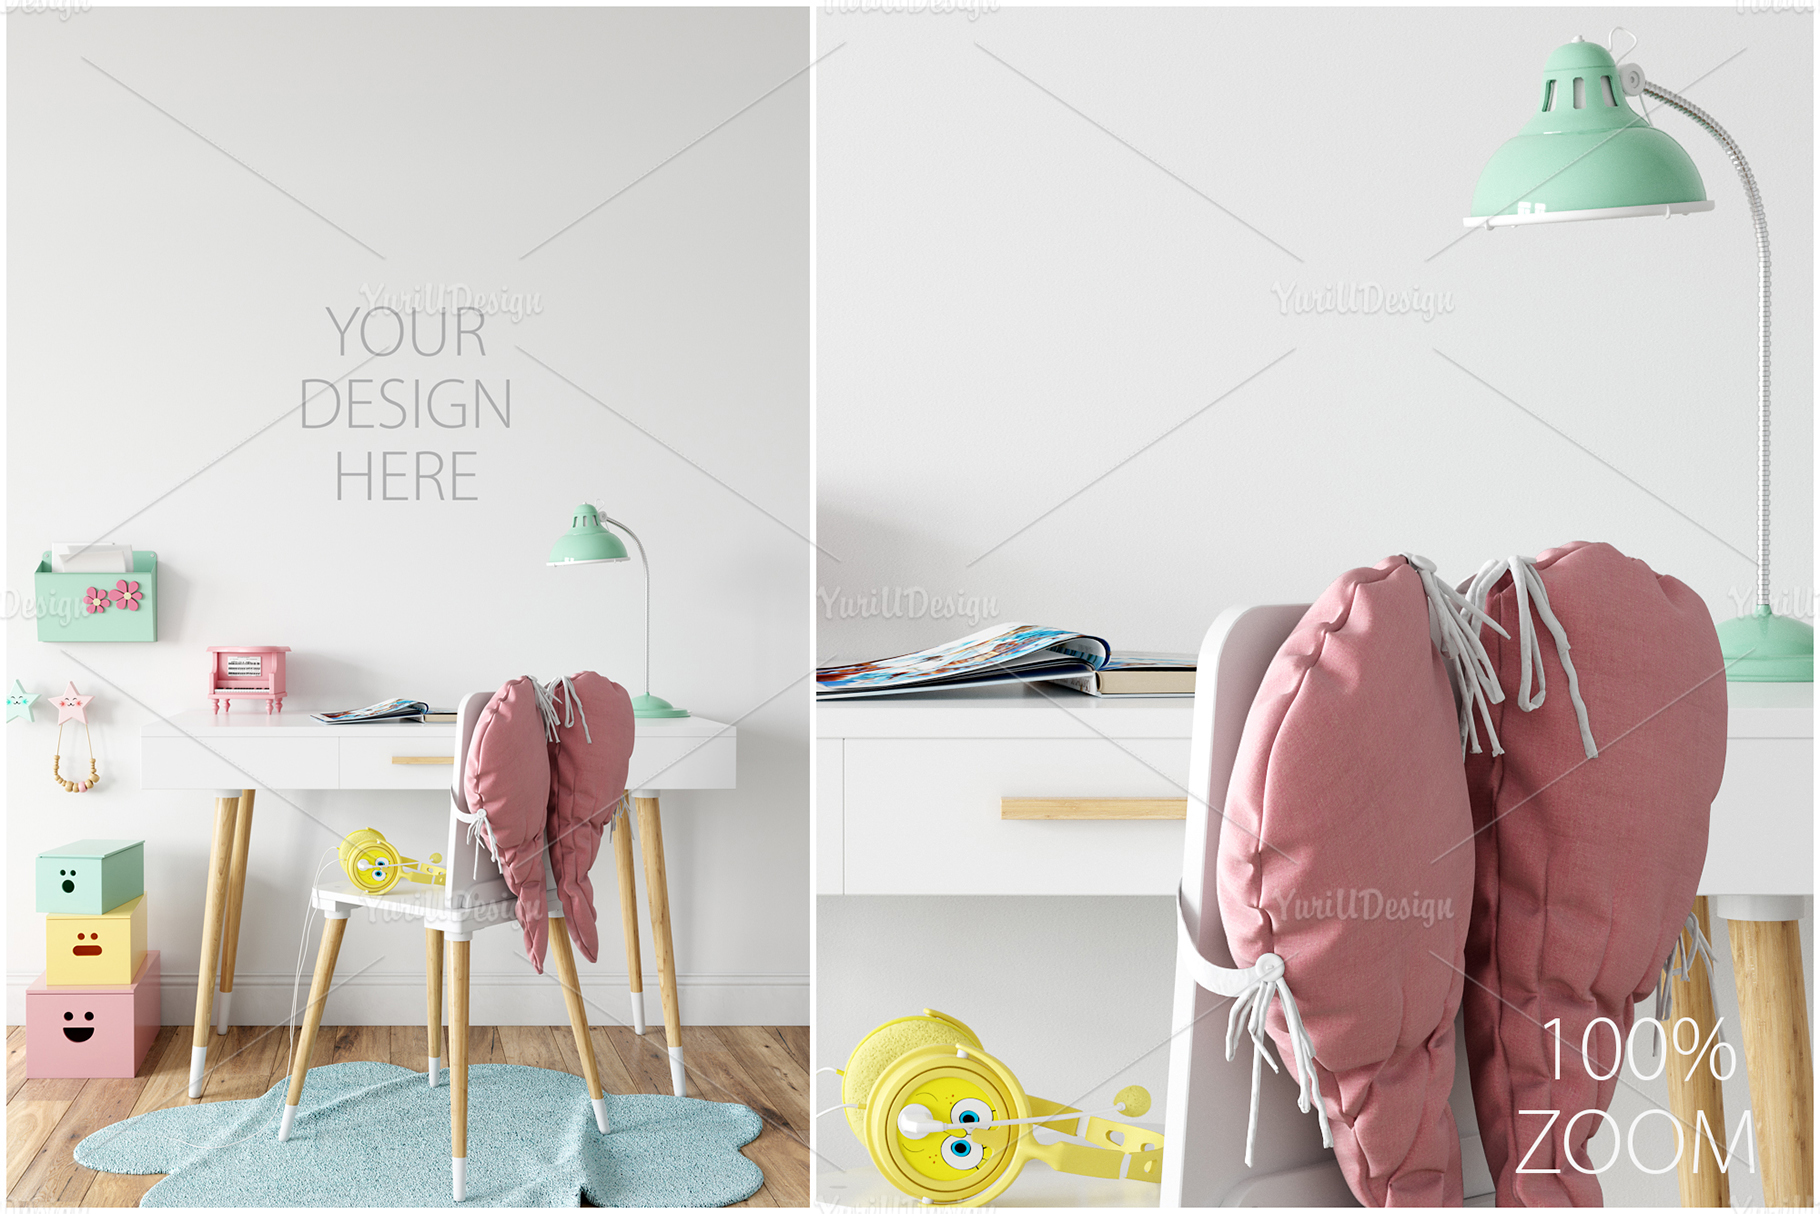 Kids Frames & Wall Mockup Bundle - 5 example image 22